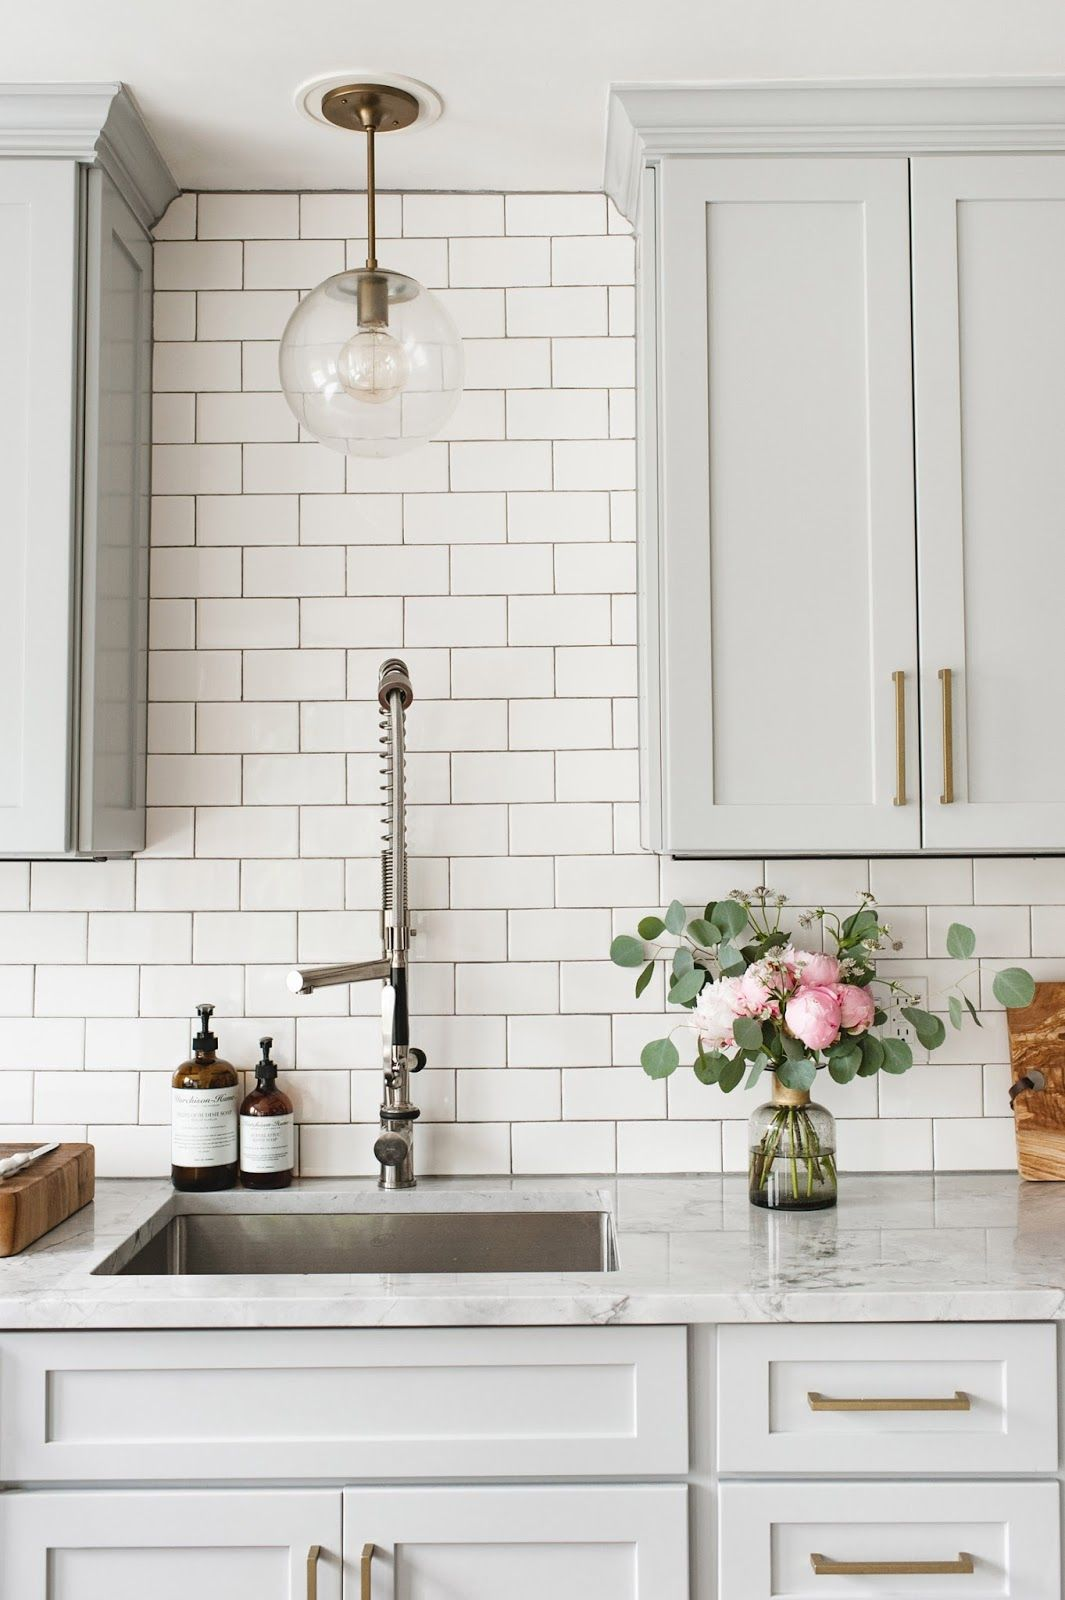 20+ Kitchen remodel cost seattle information